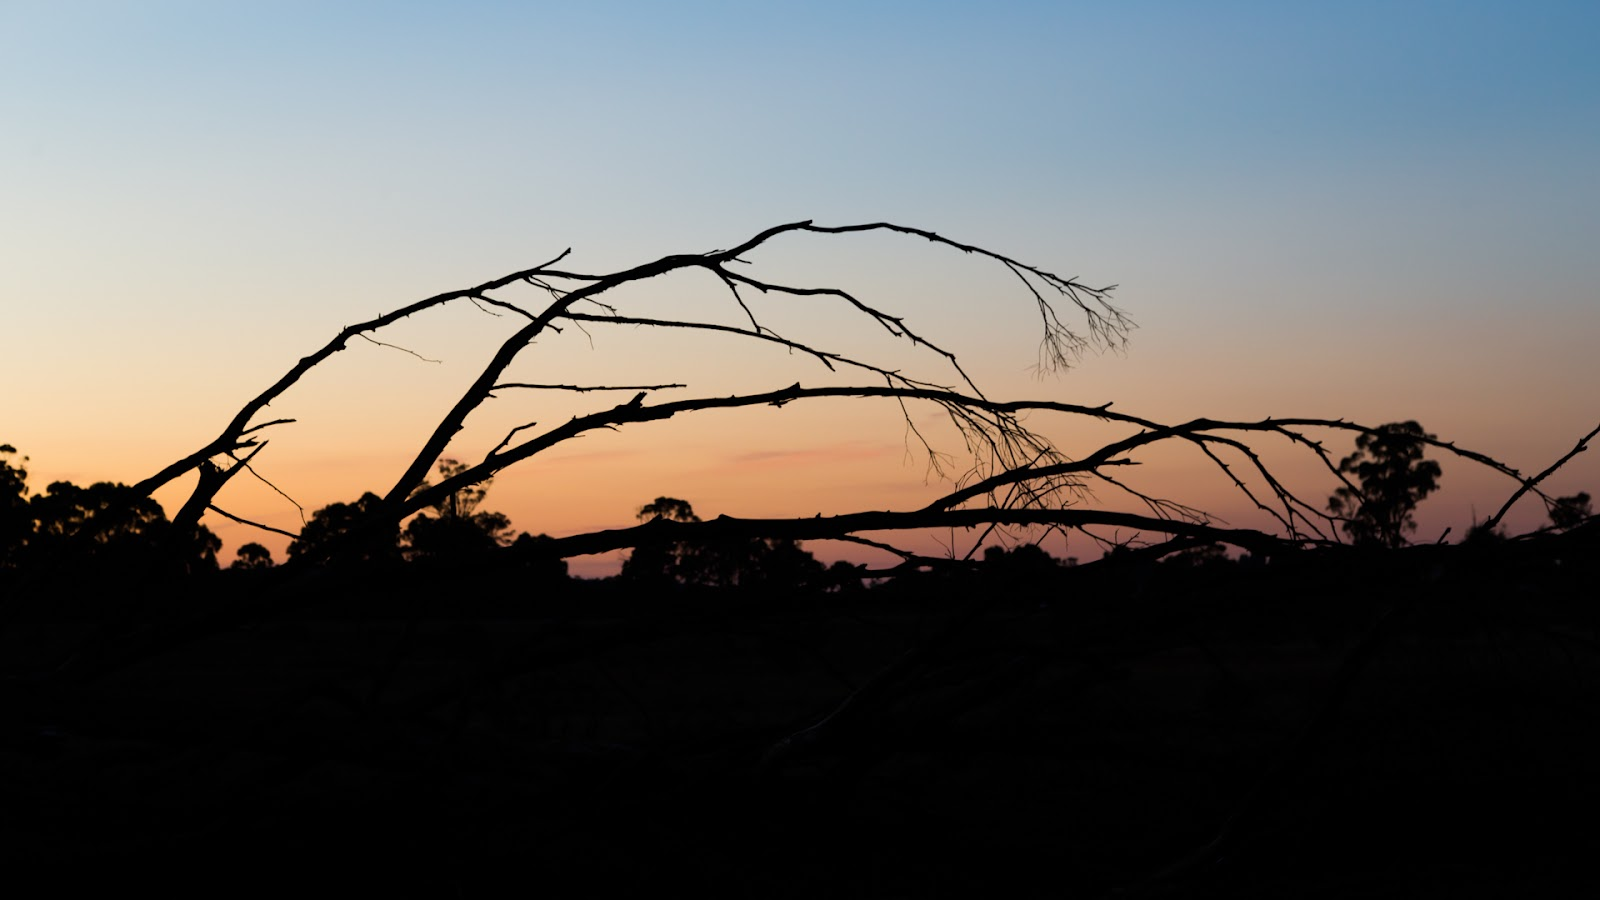 silhouette of tree branch setting sun